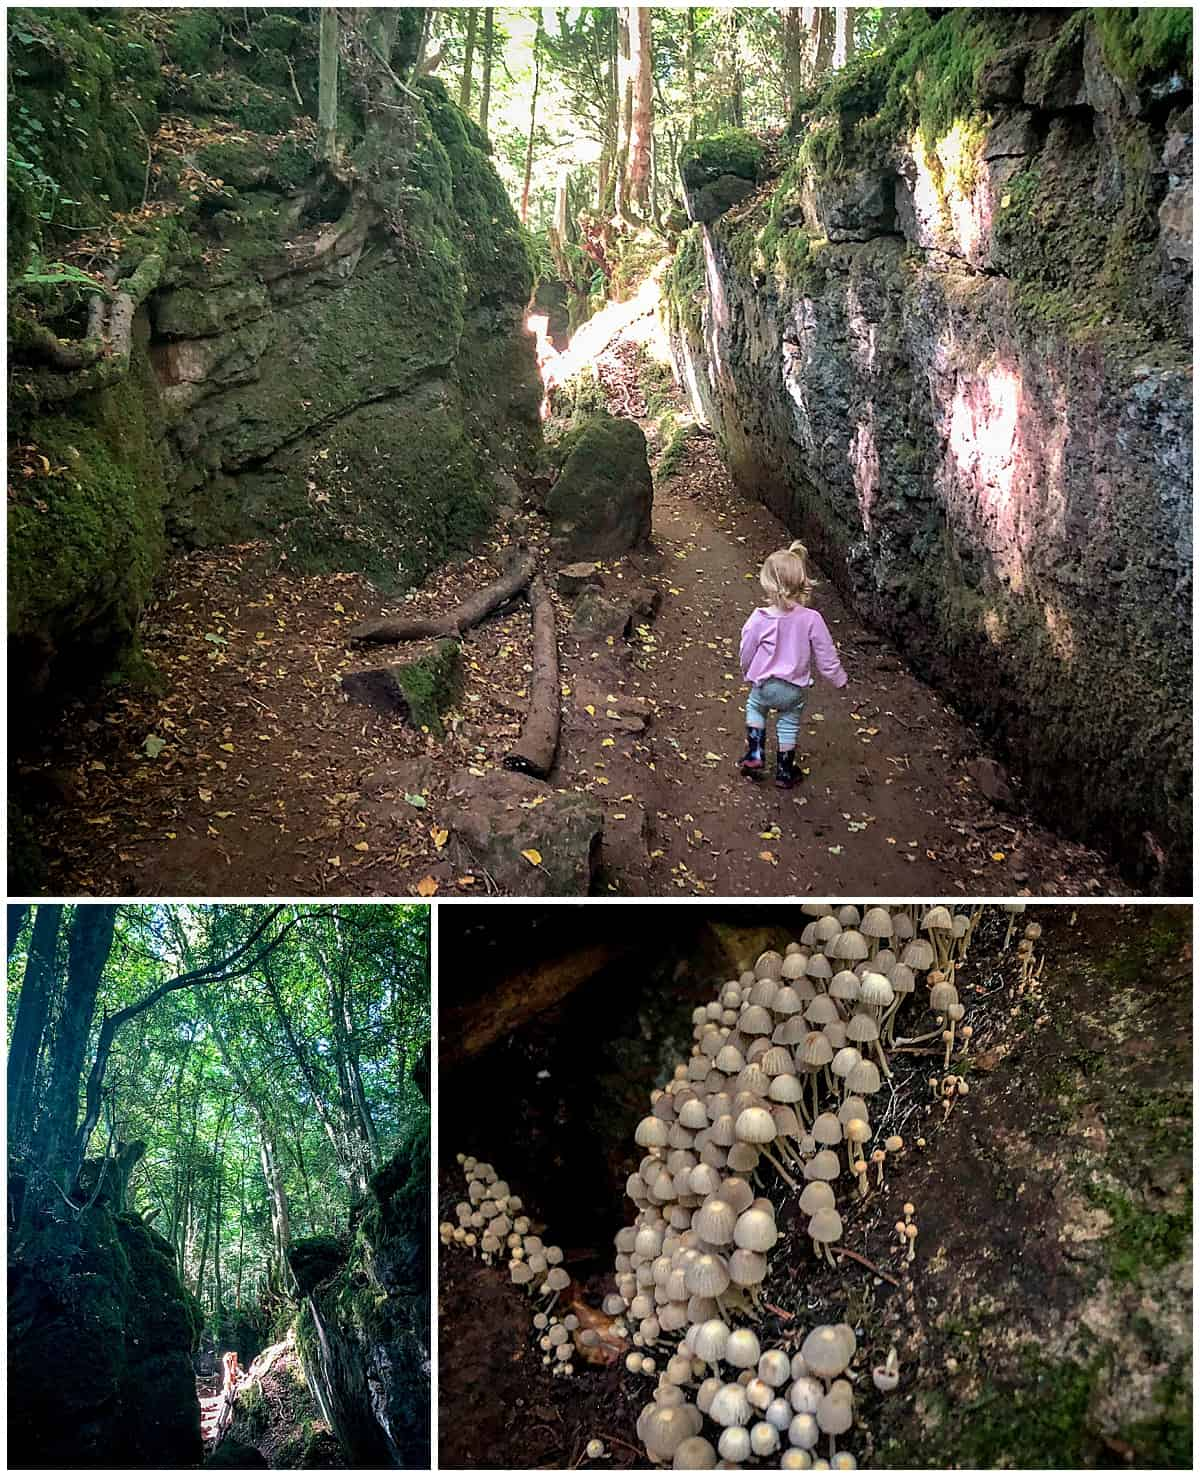 Puzzlewood - things to do in the Forest of Dean